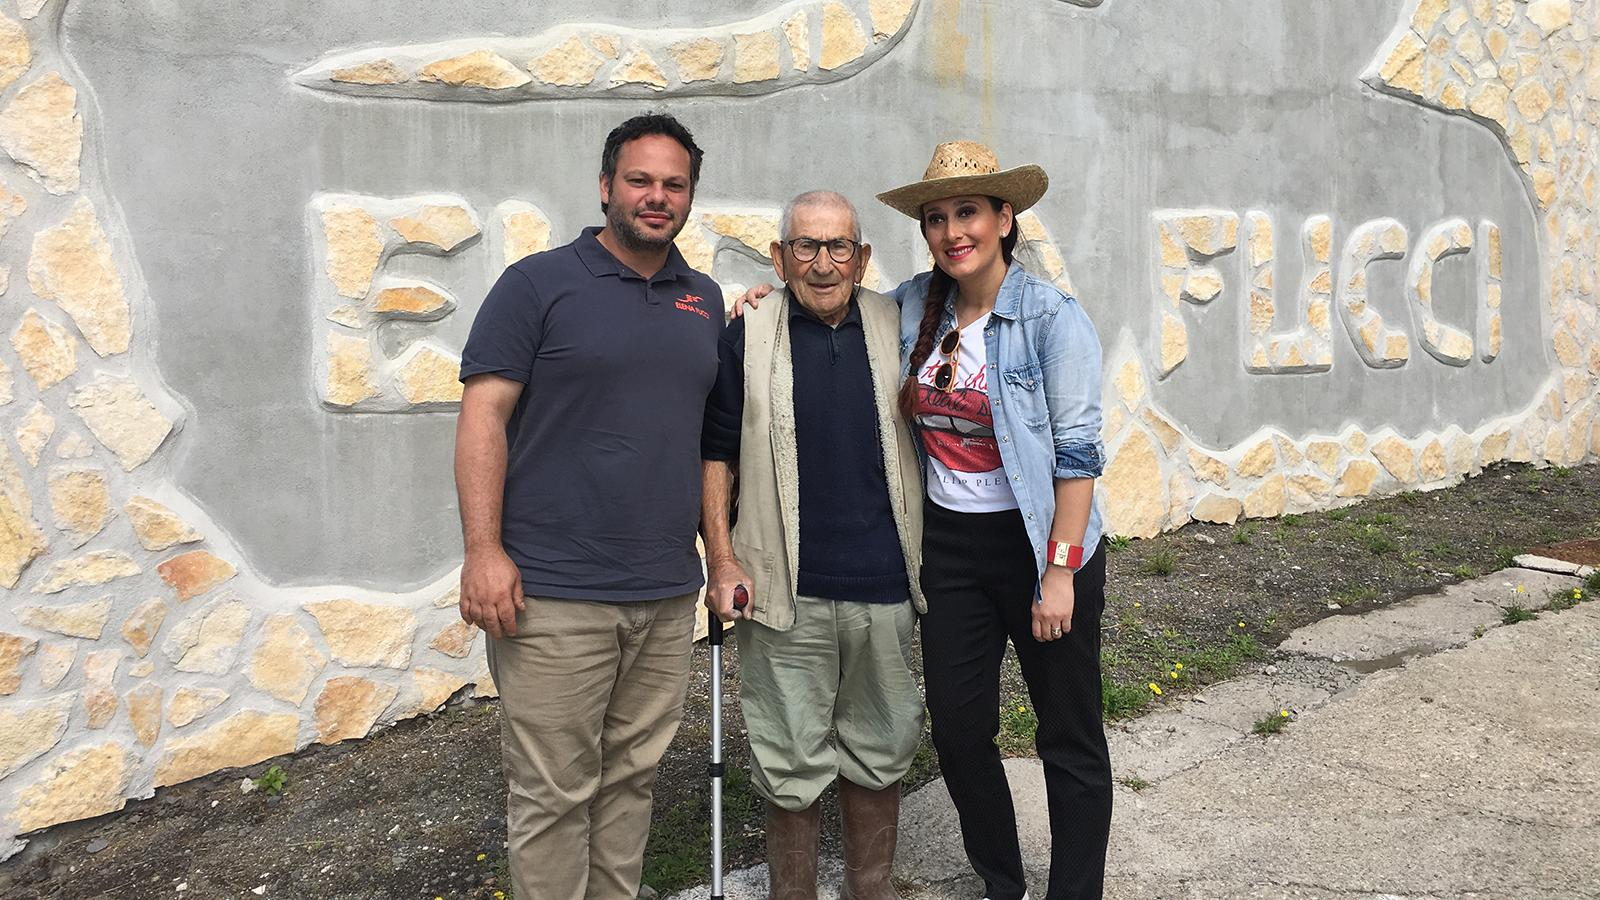 Winemaker Elena Fucci with her husband, Andrea Manzani (left), and grandfather Generoso at her